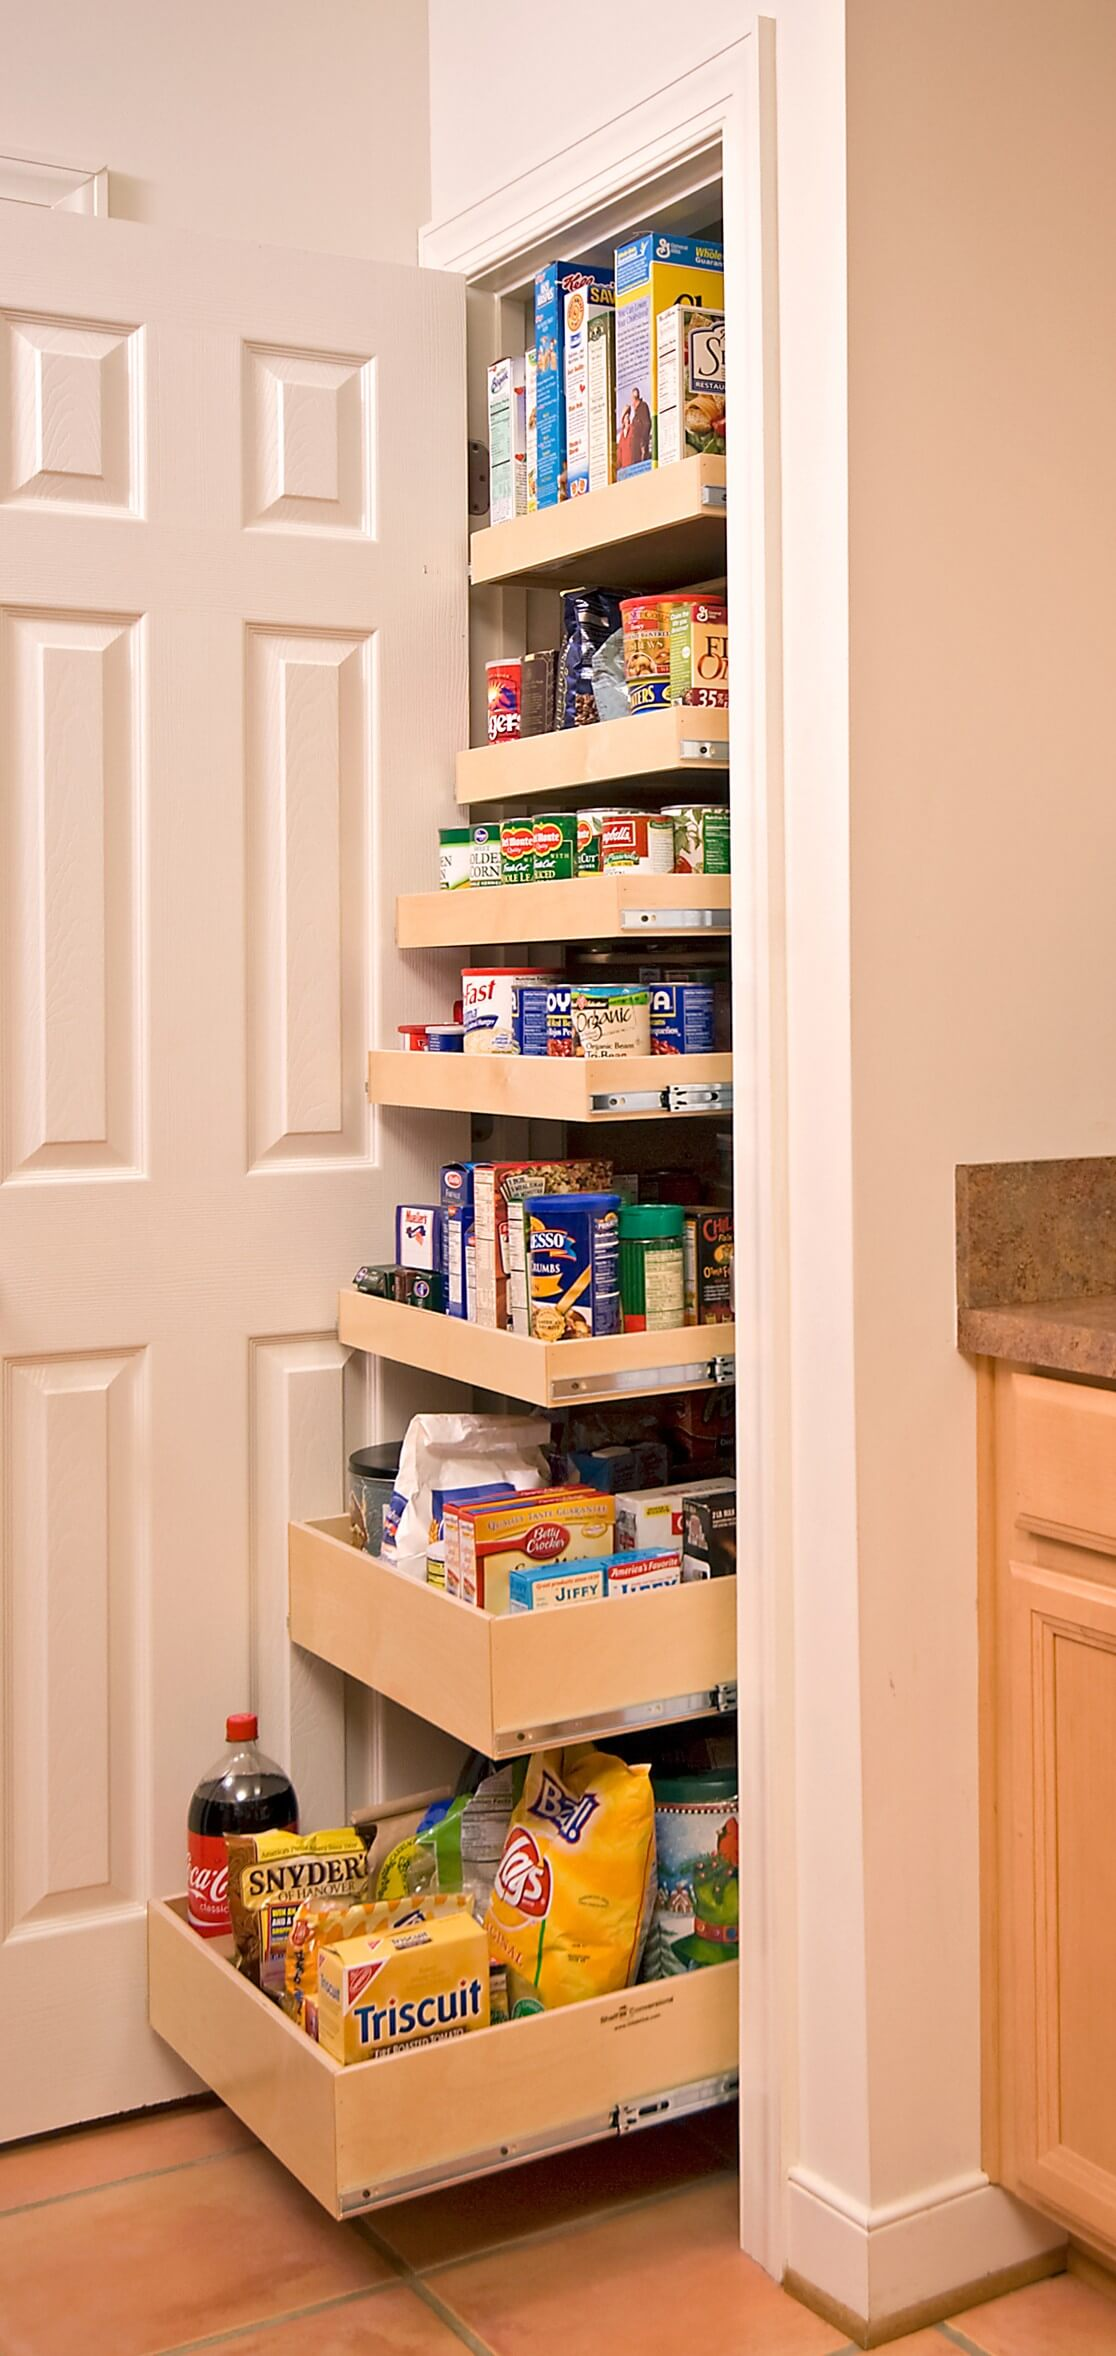 Easy-to-Reach Pantry Drawers that Pull Out